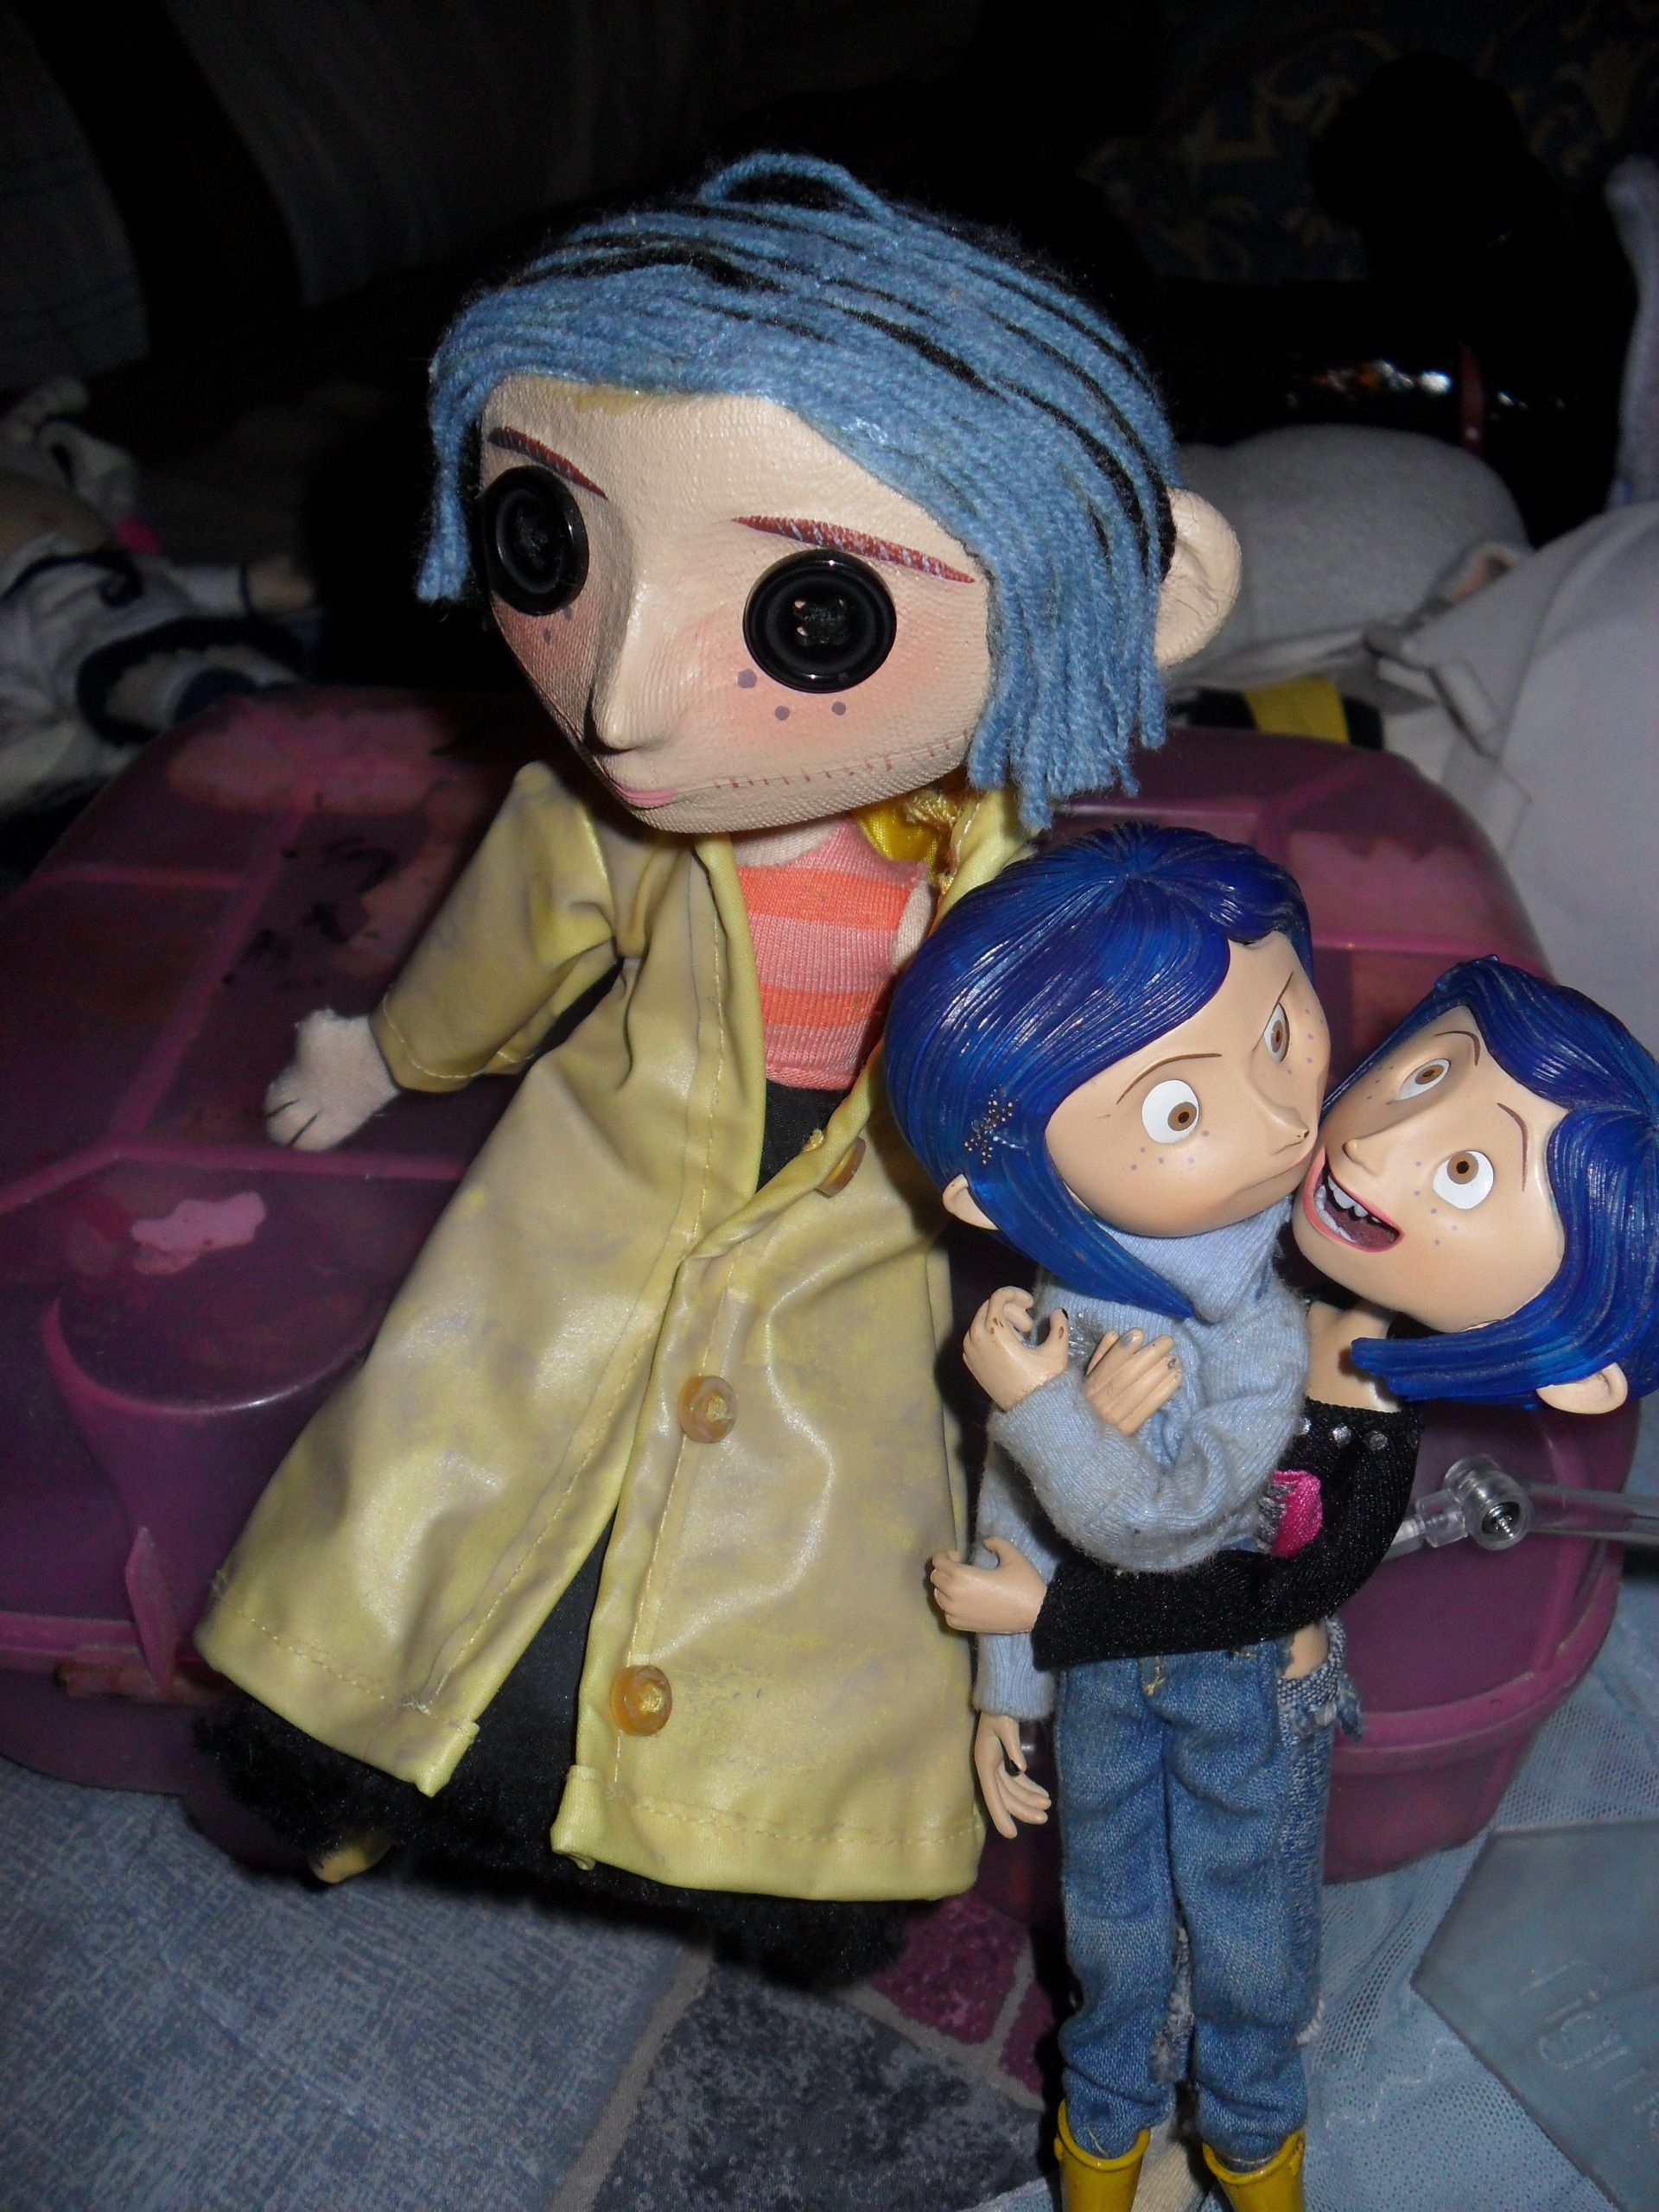 Coraline Photo My Coraline S Stuff Xd Coraline Coraline And Wybie Coraline Doll